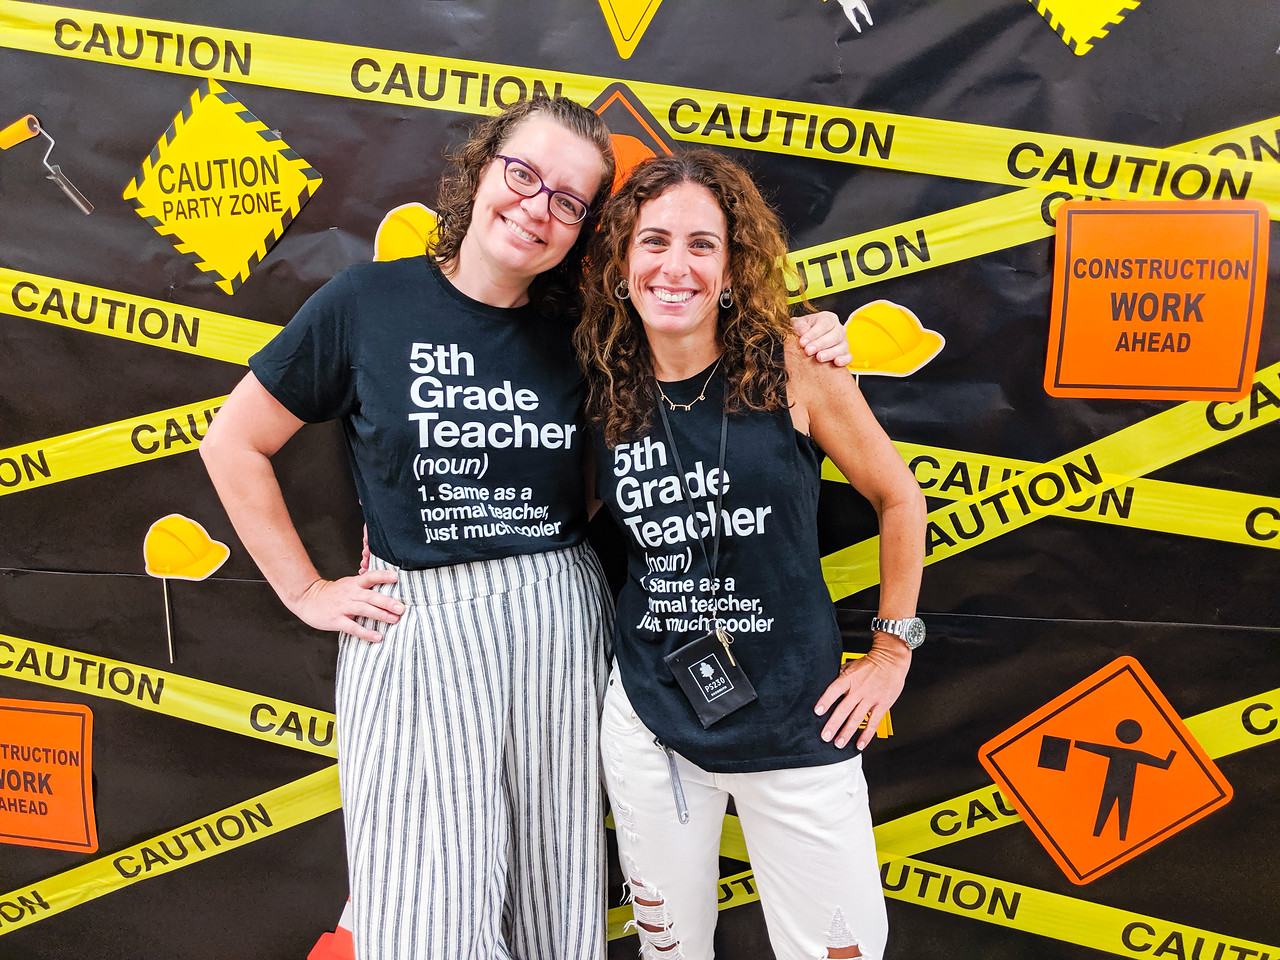 Smiling 5th grade teachers